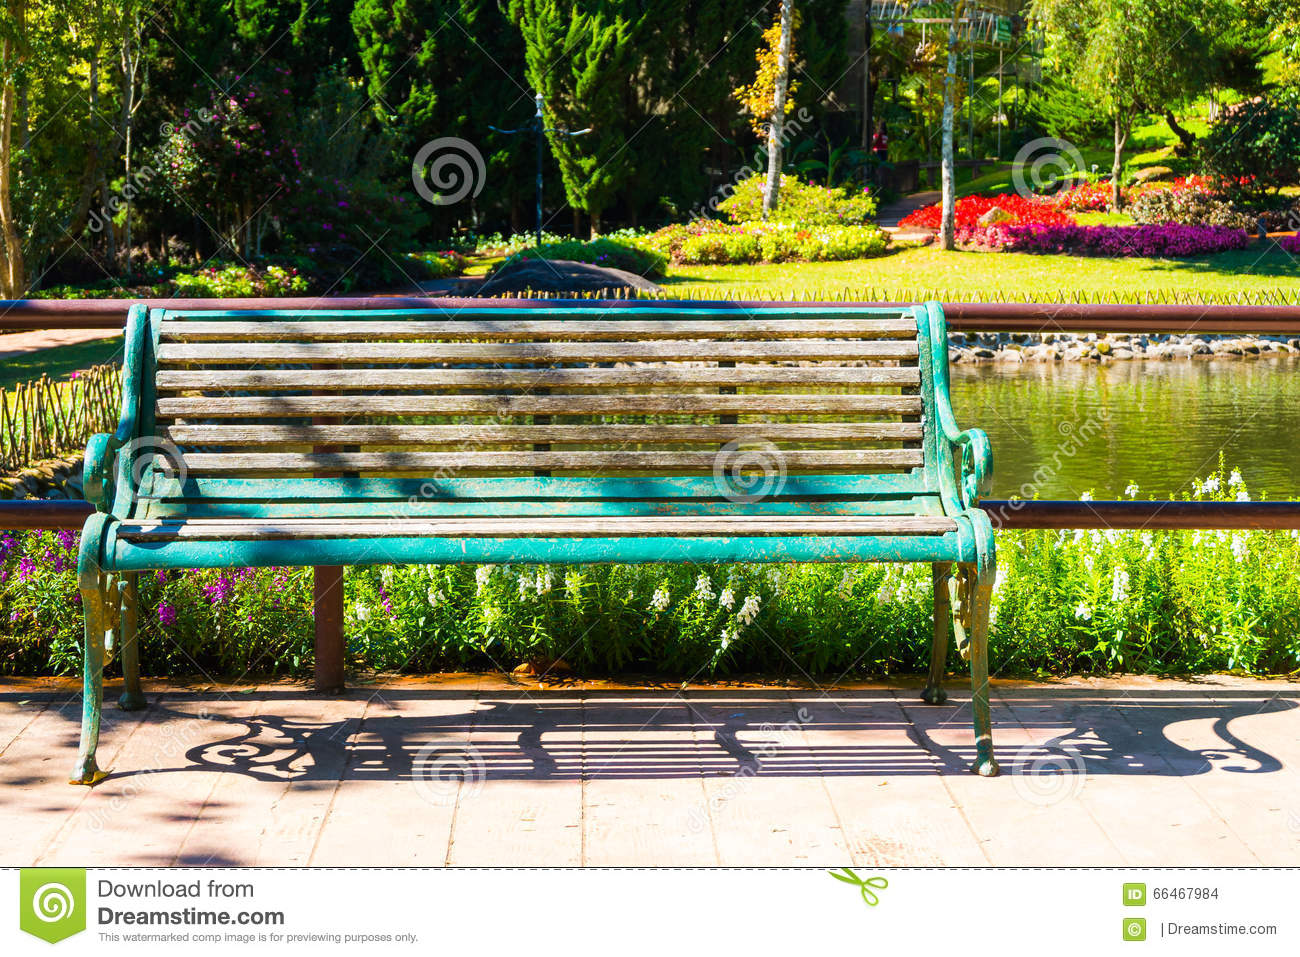 A Bench In The Park With Blurry Background Stock Photo - Image of ... for Park Background With Bench  75sfw